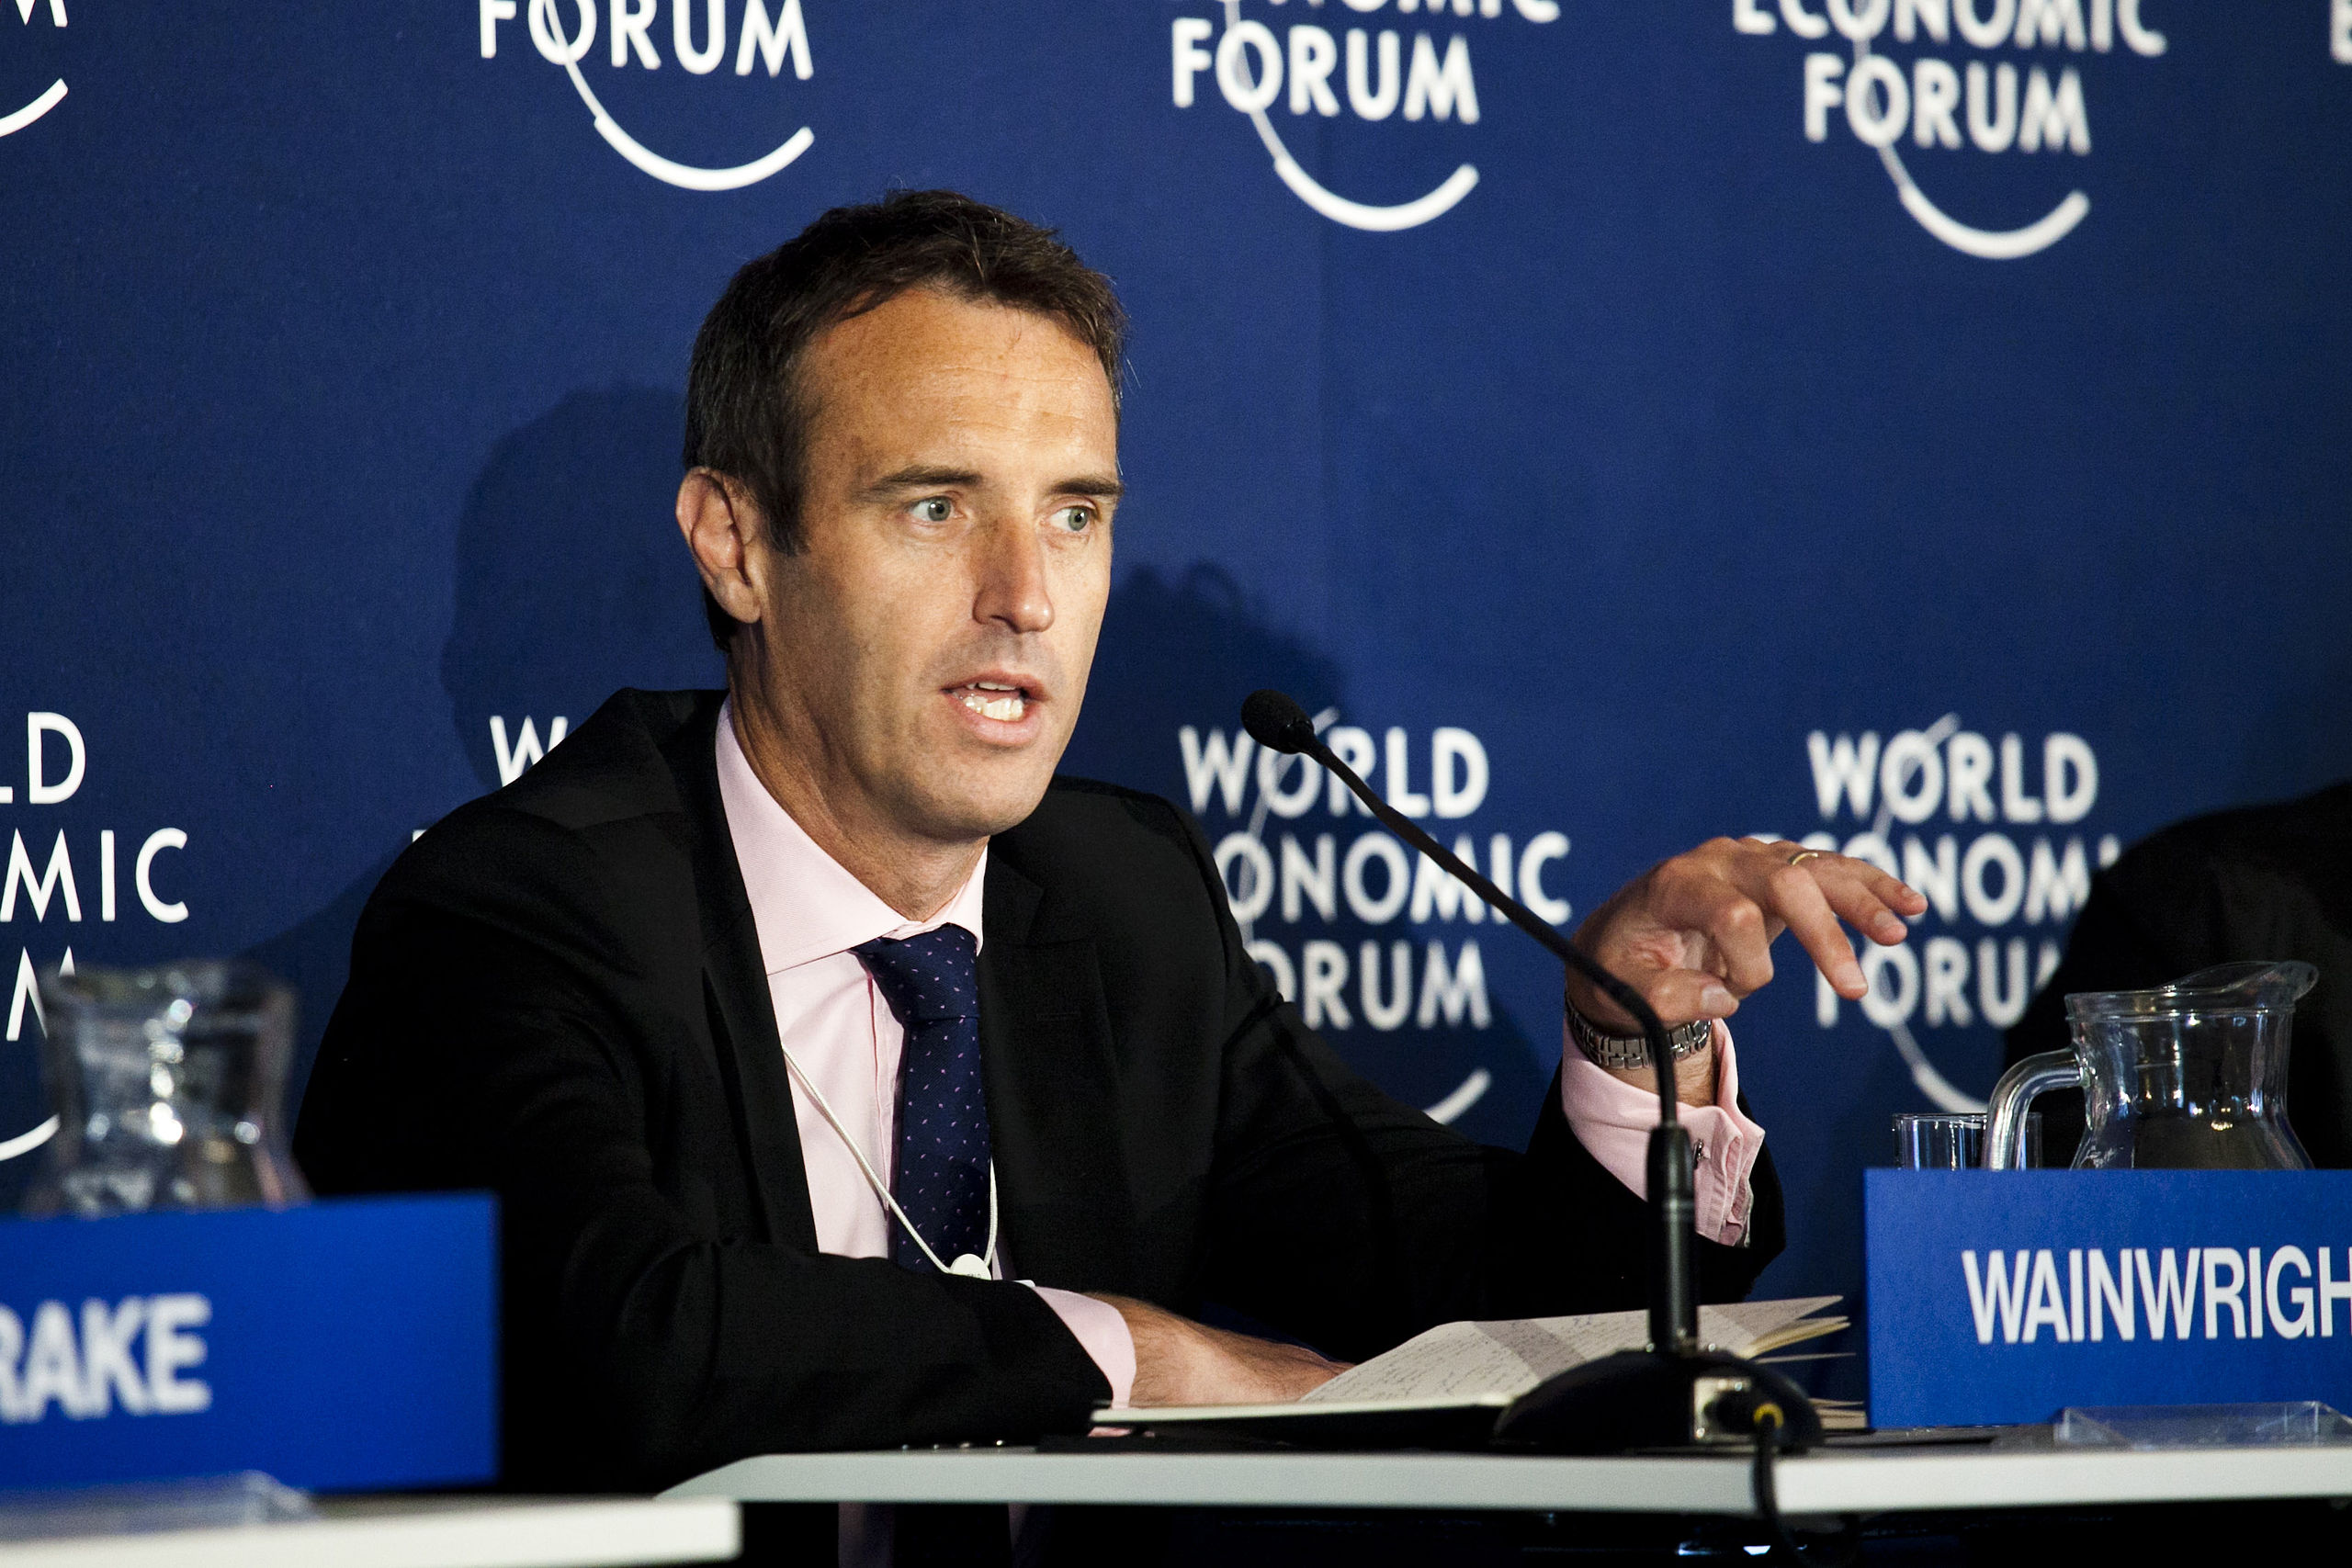 Director Wainwright at the World Economic Forum